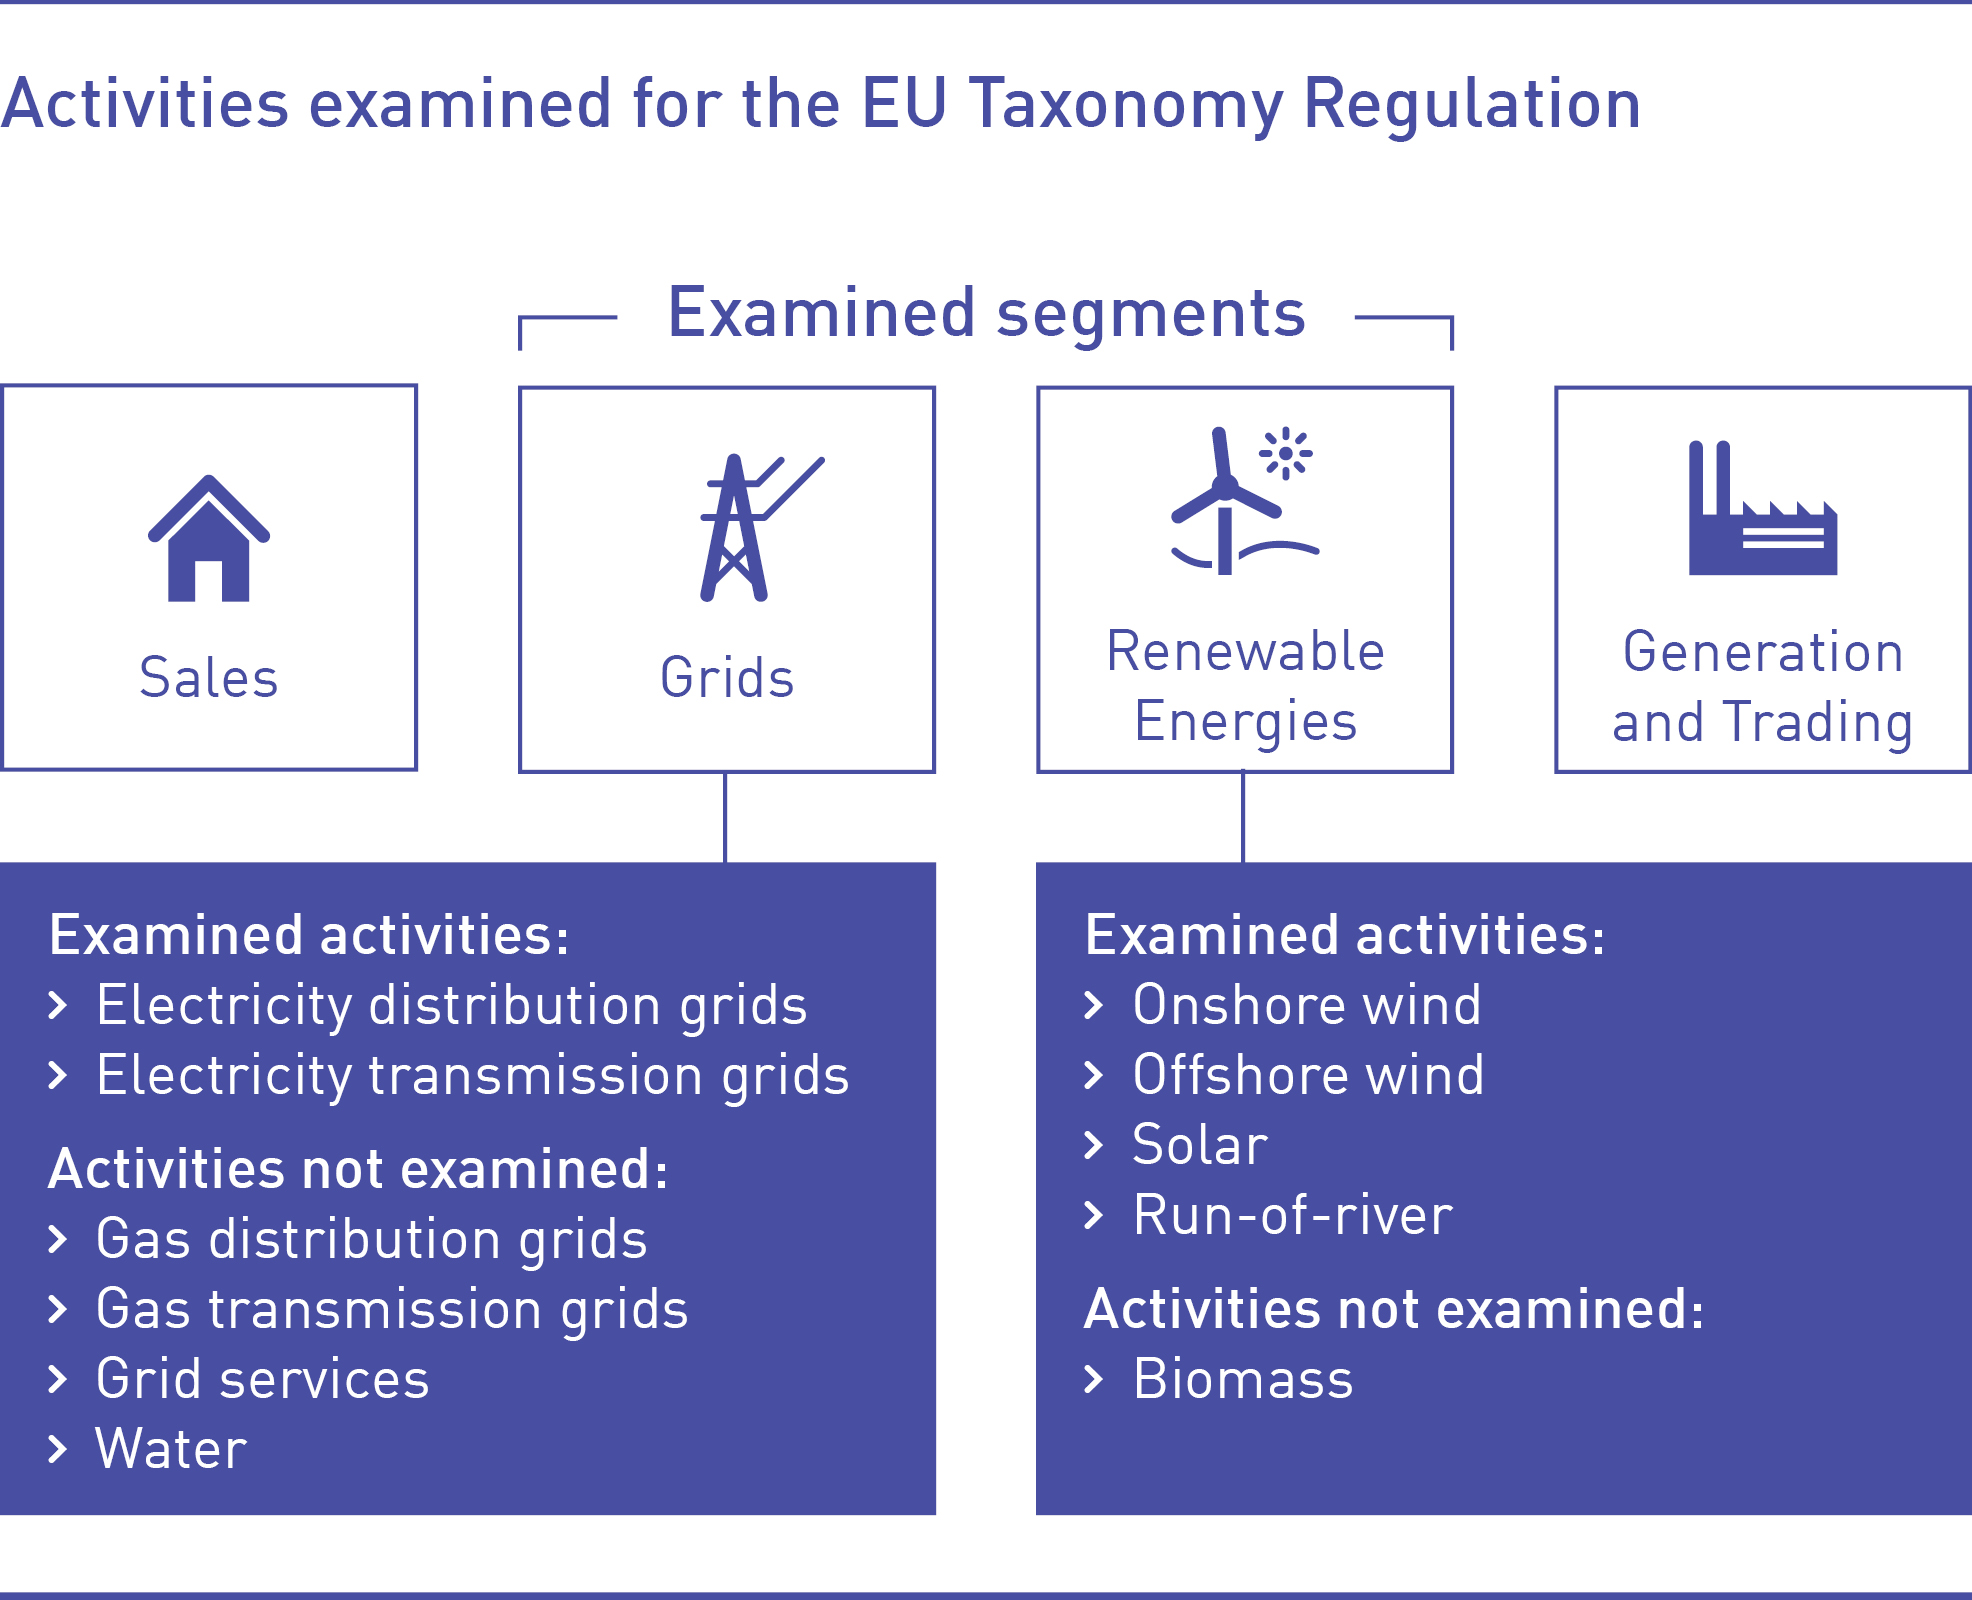 Activities examined for the EU Taxonomy Regulation